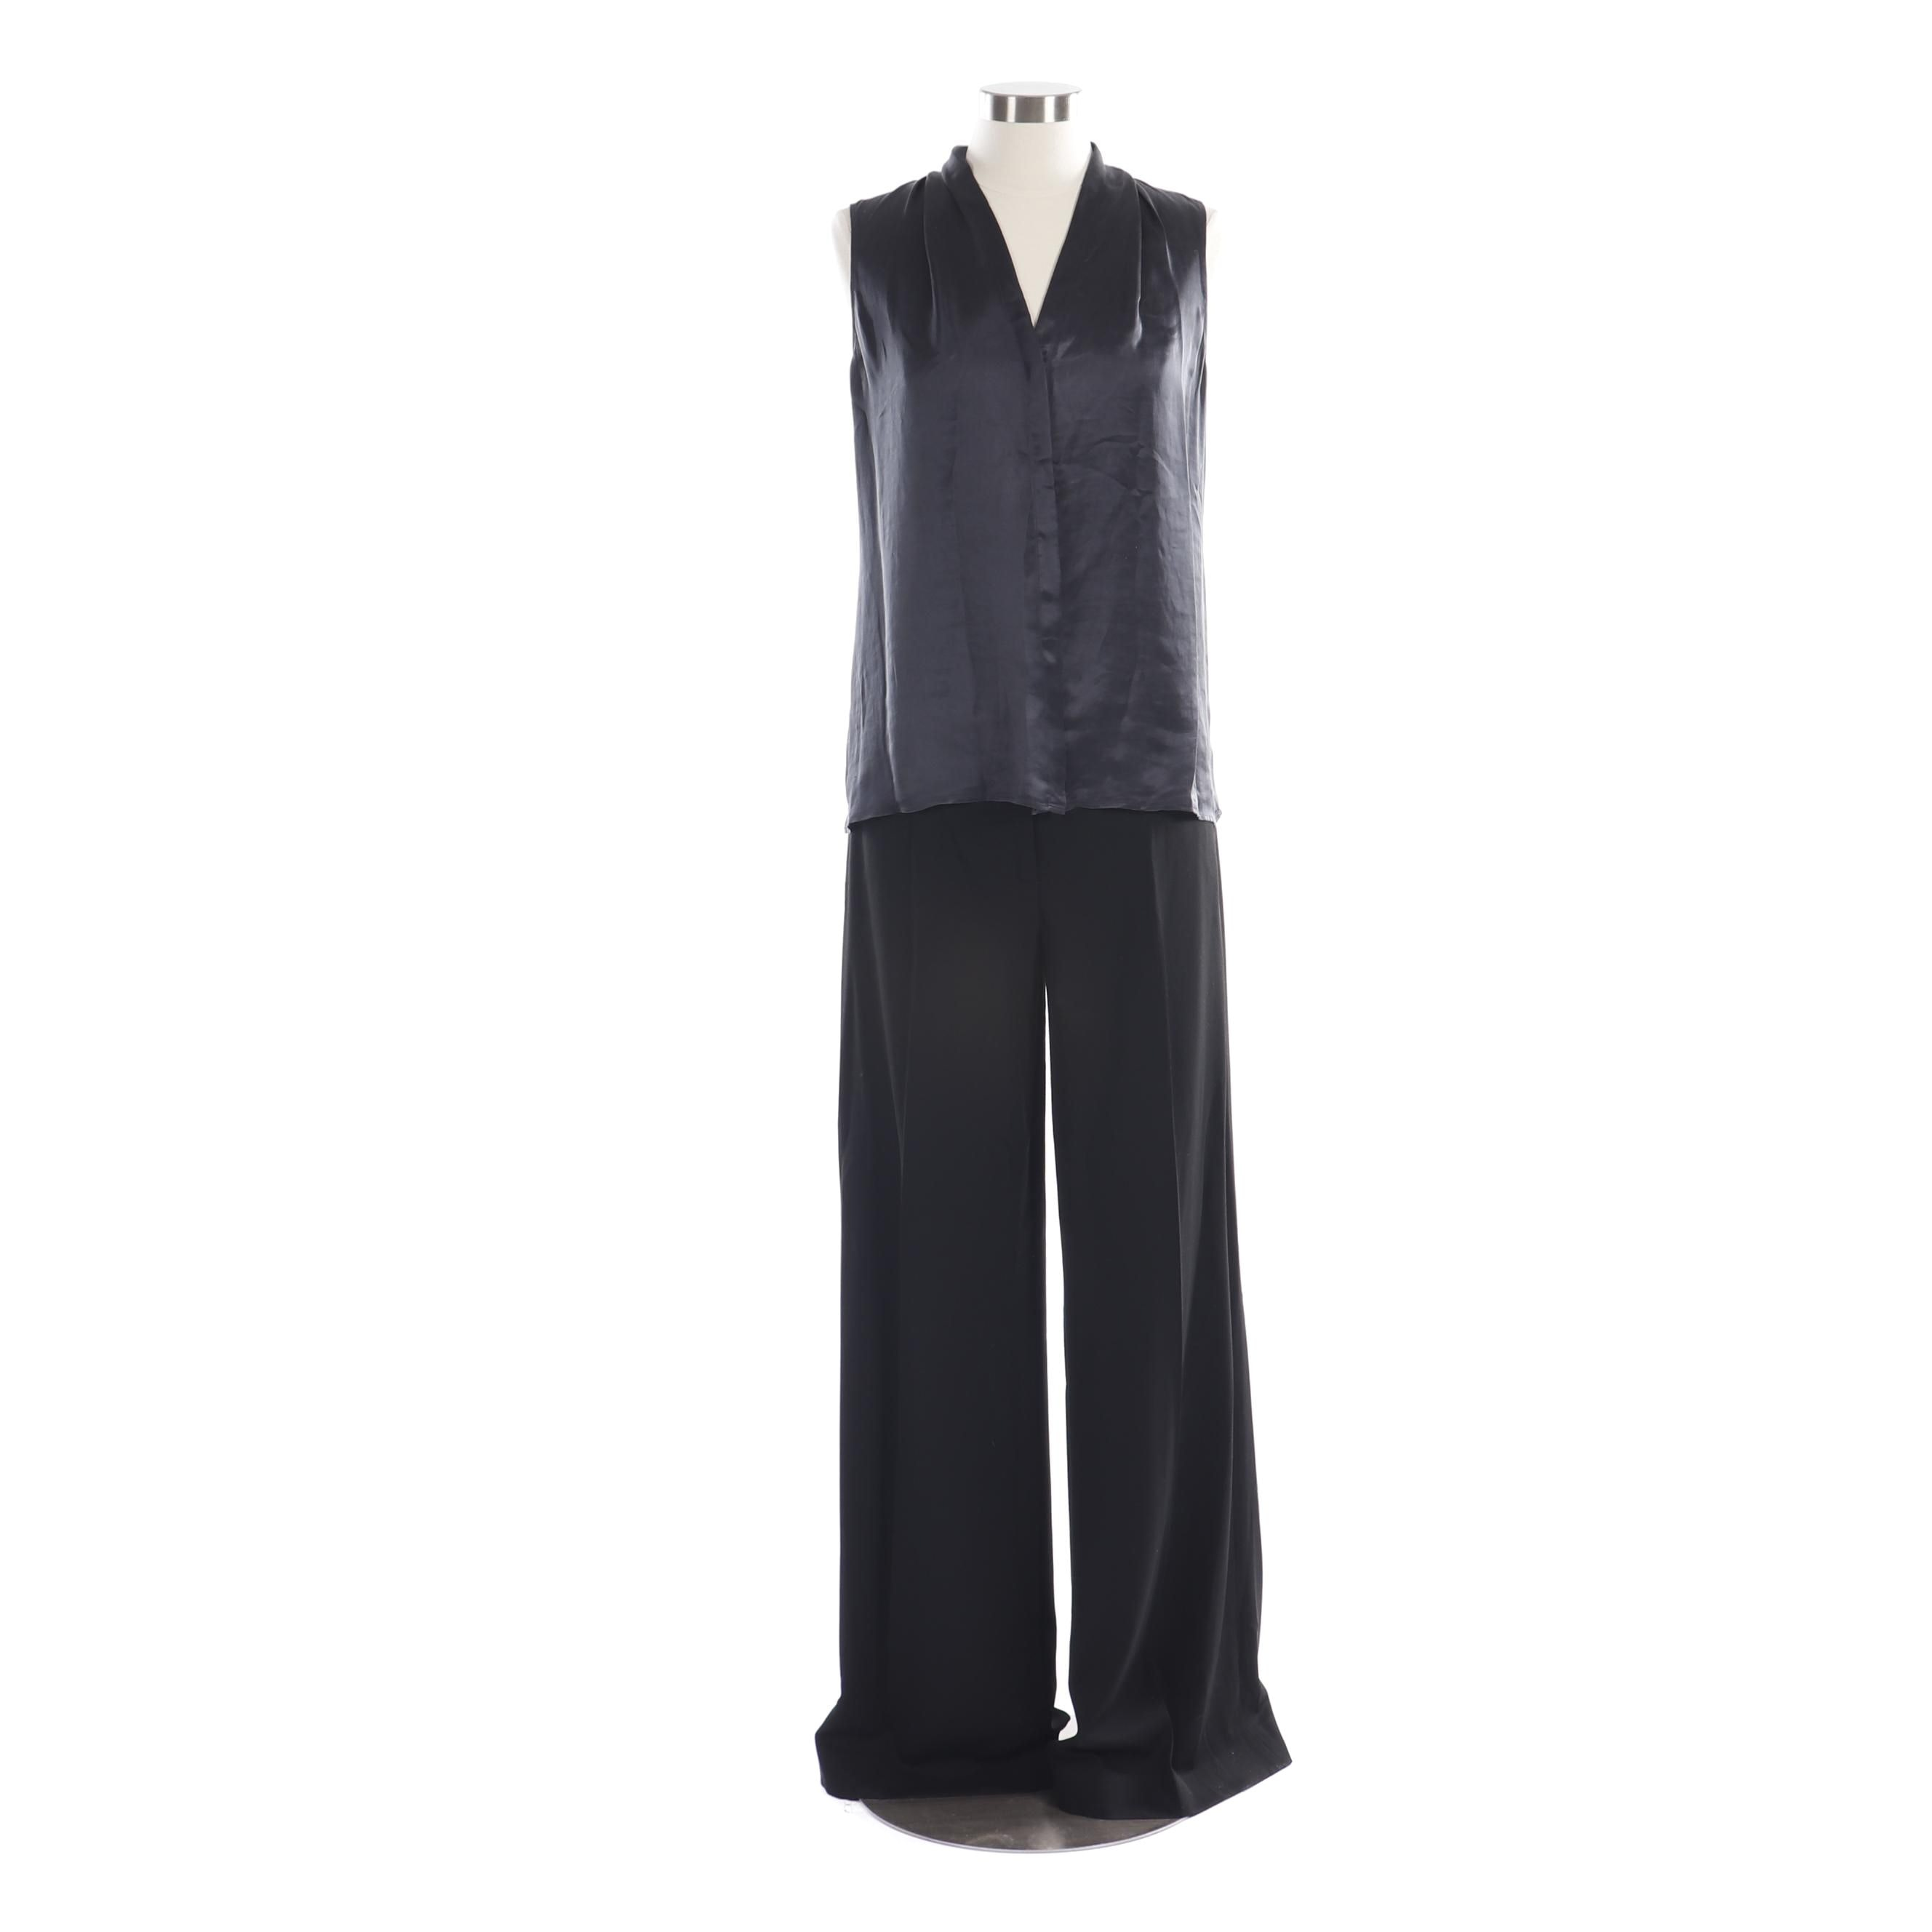 Women's Theory Black Sleeveless Top and DKNY Black Trousers